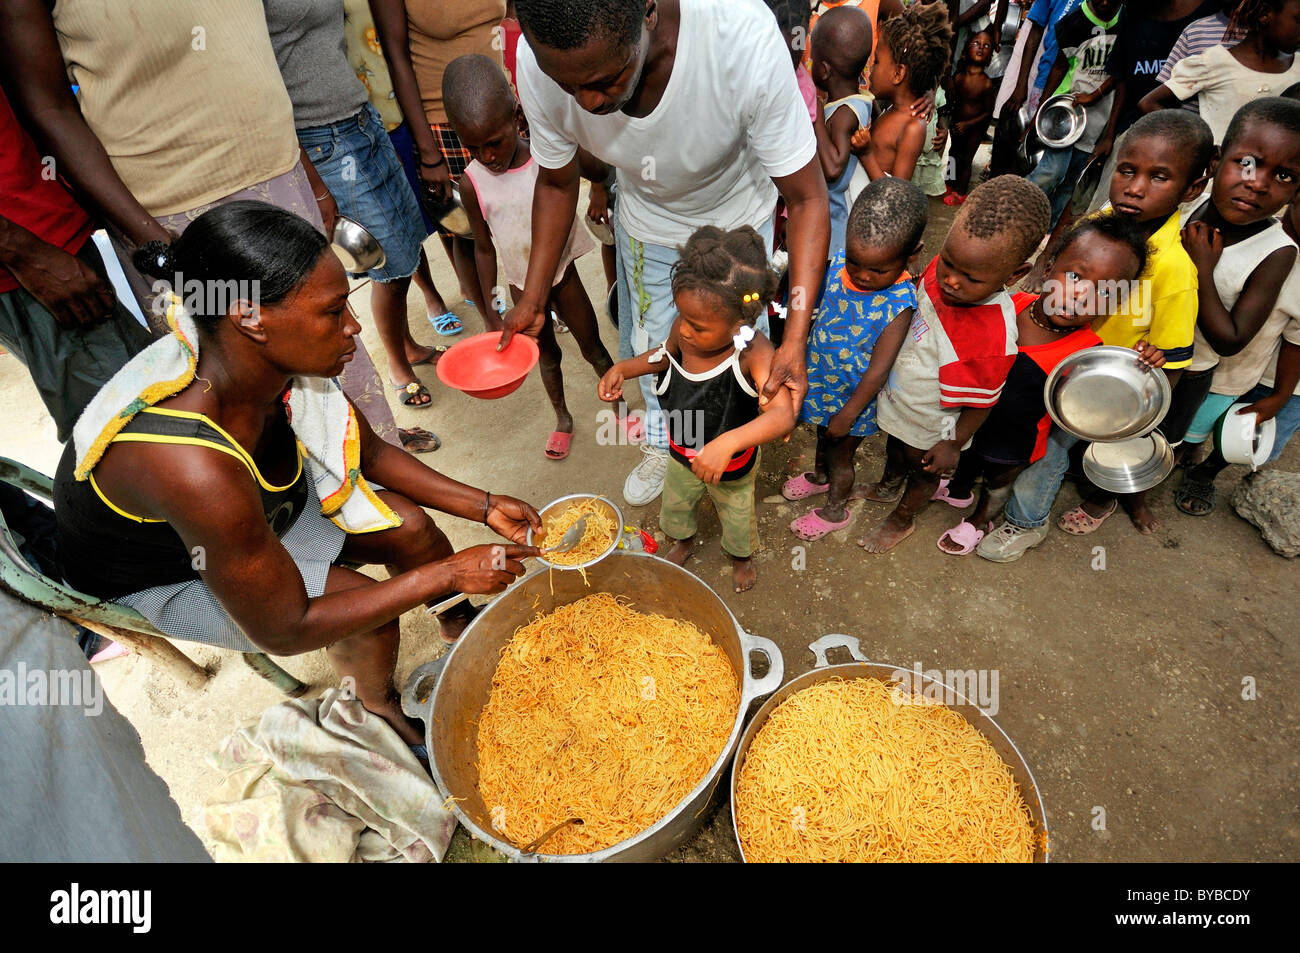 Food distribution to needy children at a camp for victims of the January 2010 earthquake, Croix-des-Bouquets district, - Stock Image